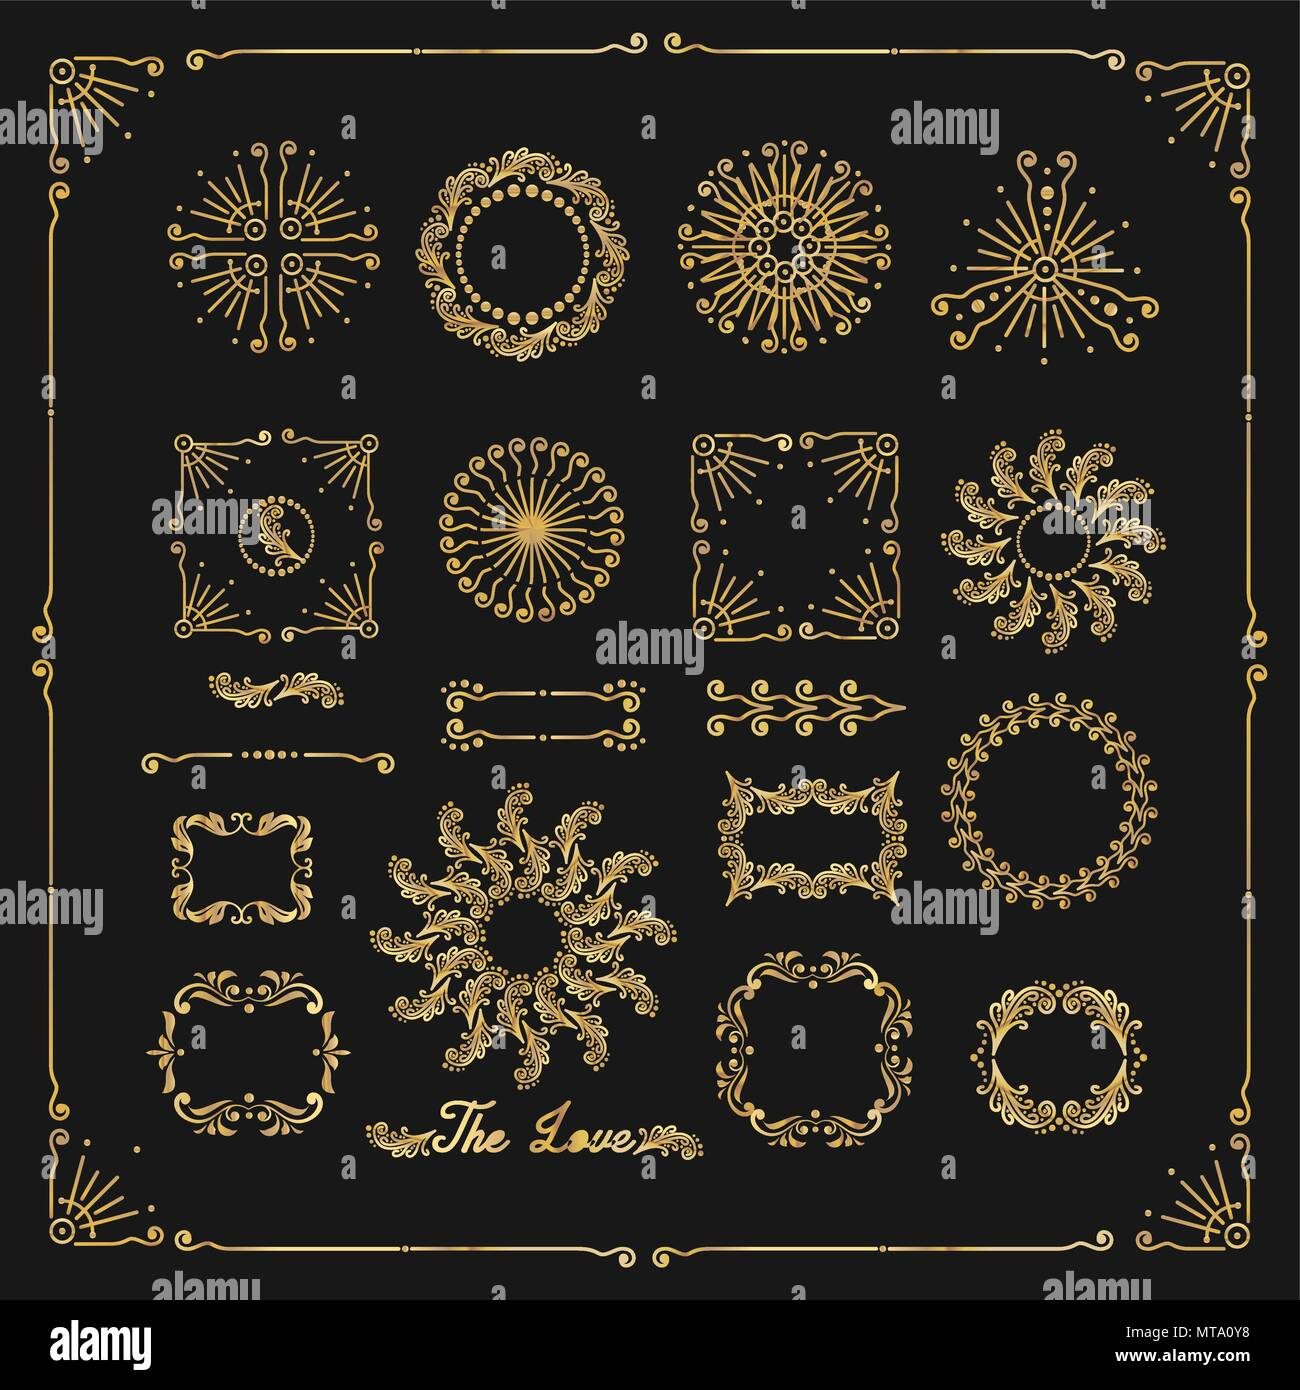 vector set of decorative elements border frame with floral